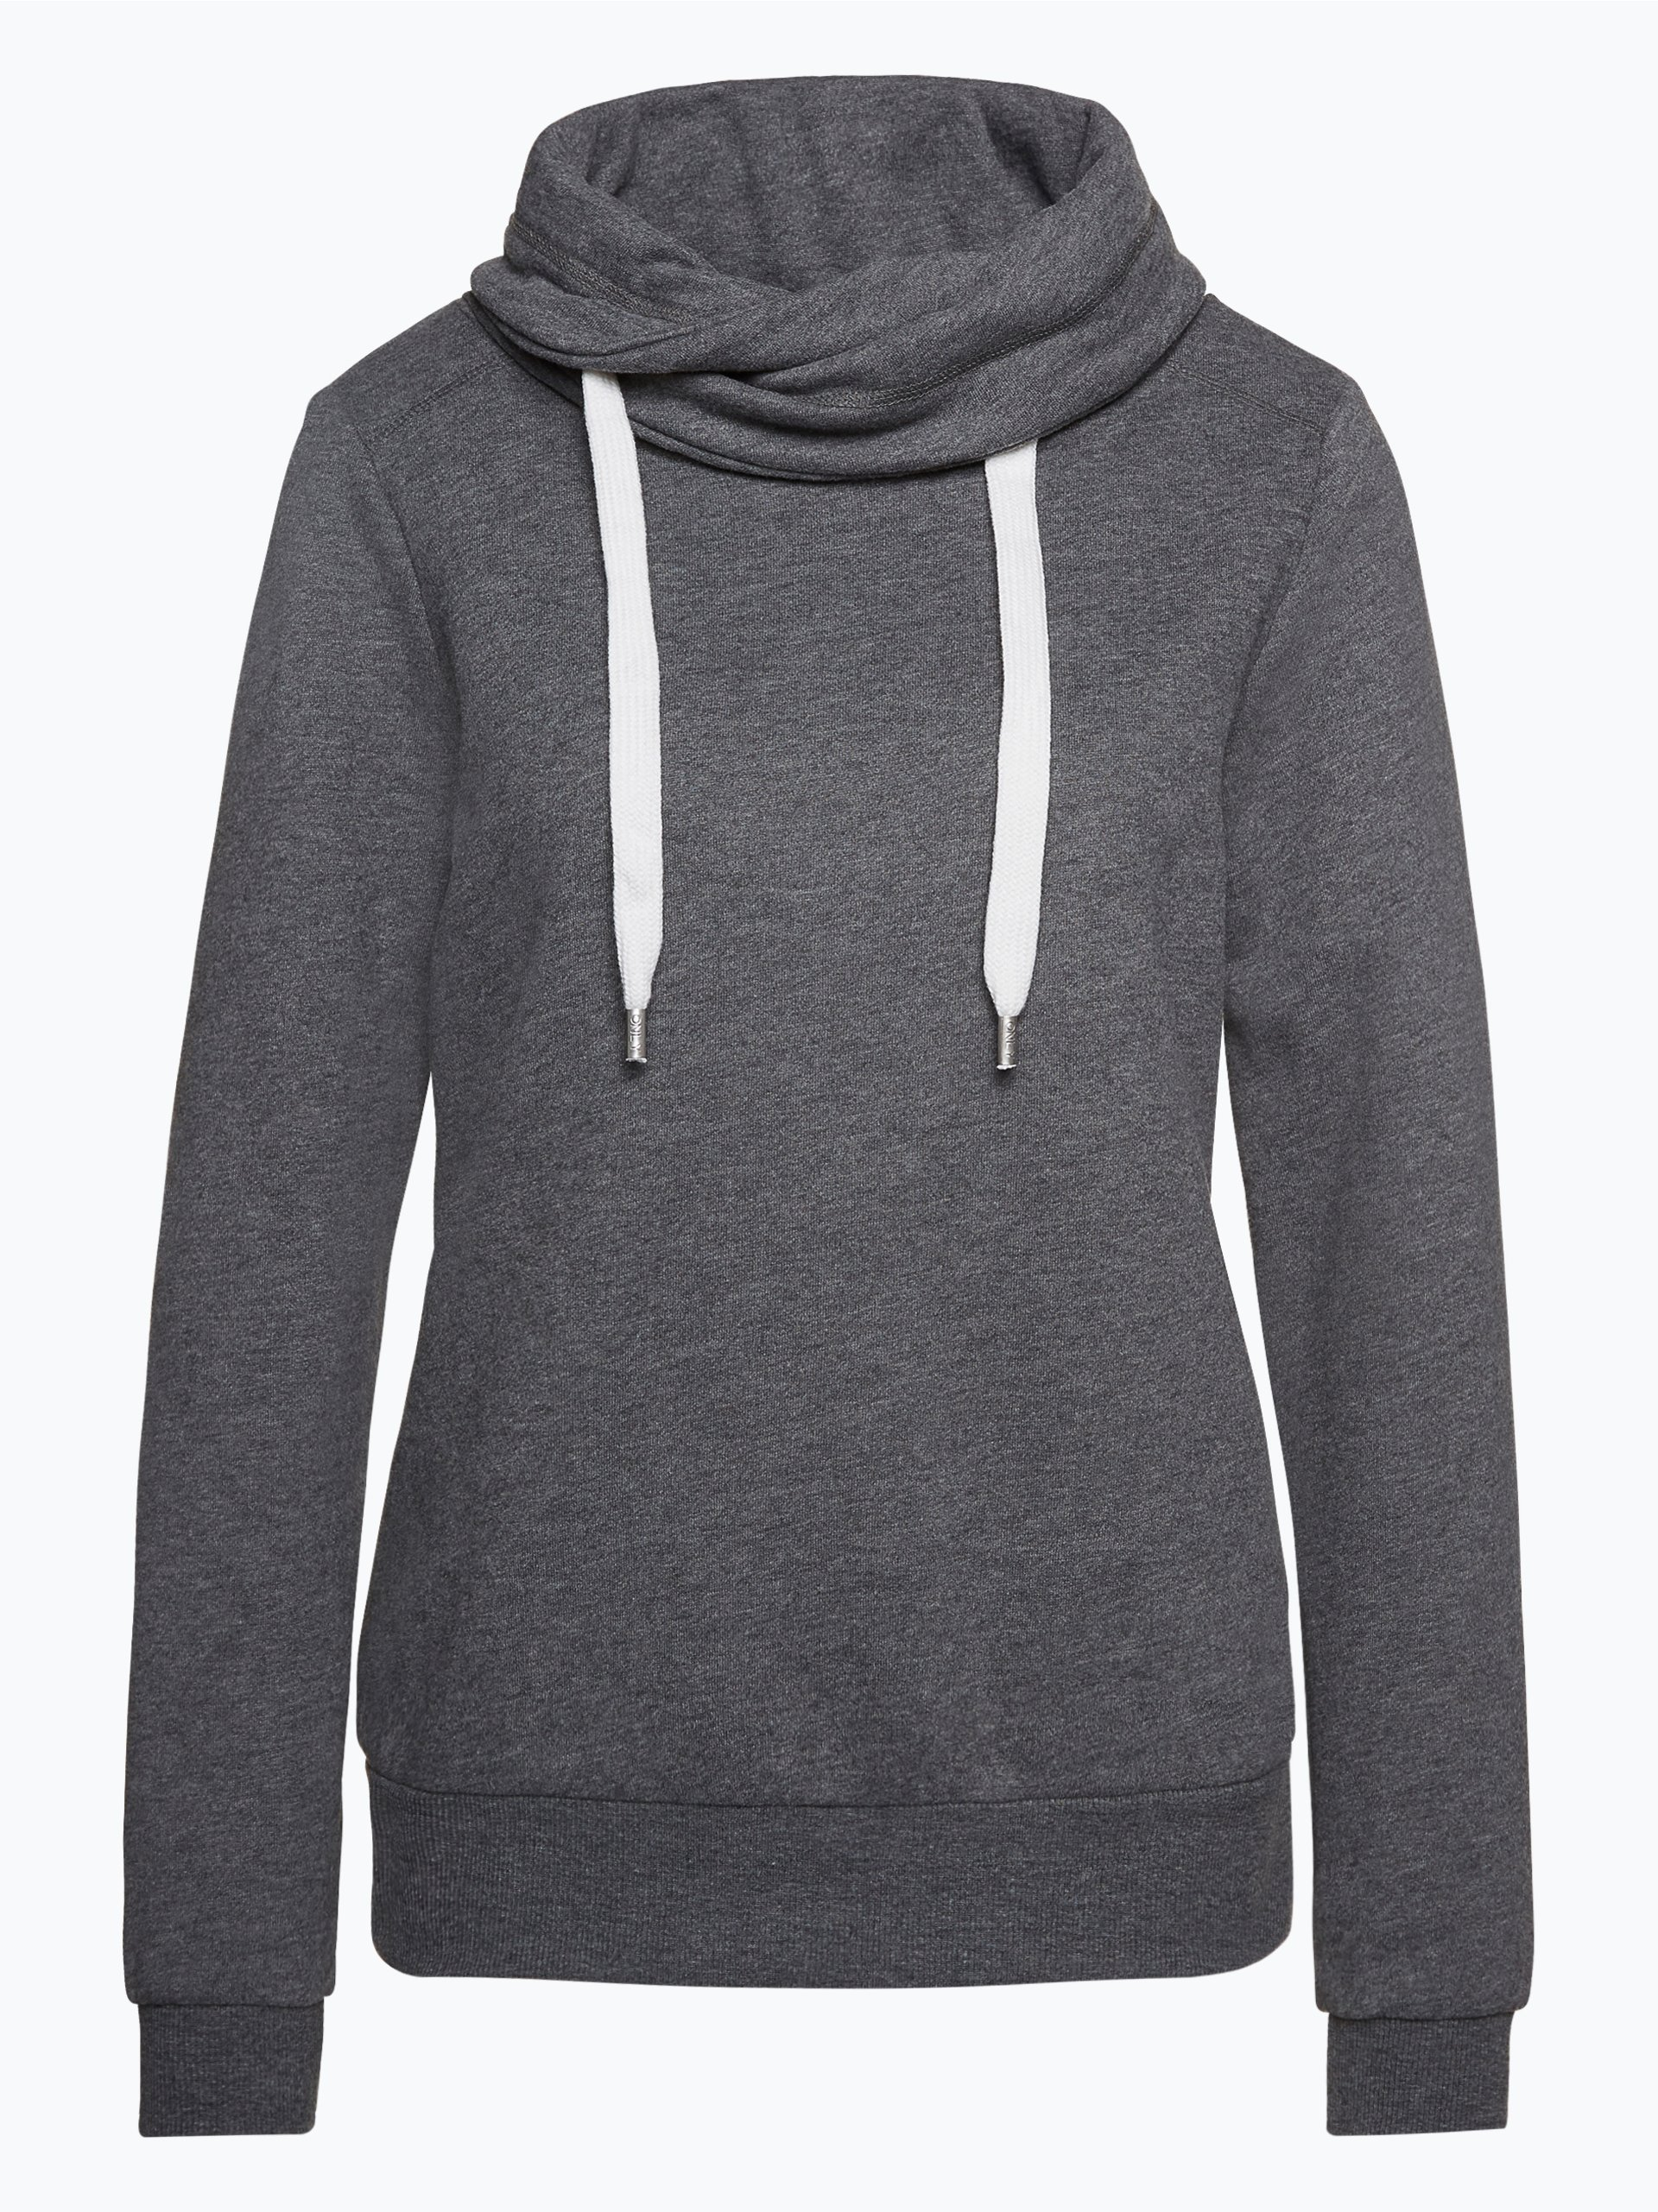 ONLY Damen Sweatshirt - Bette